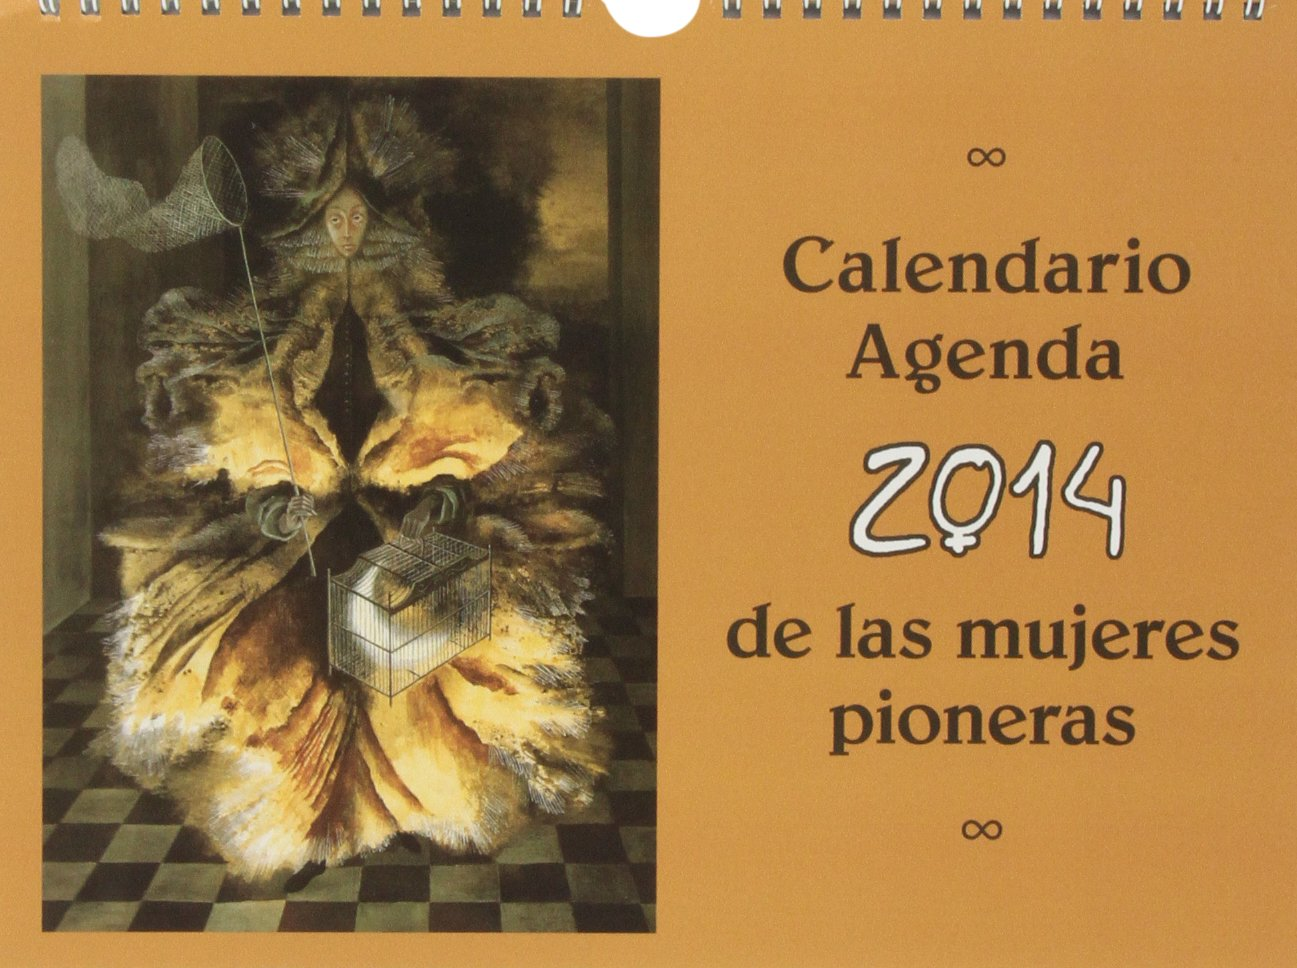 CALENDARIO MUJERES 2014: 9788496004573: Amazon.com: Books